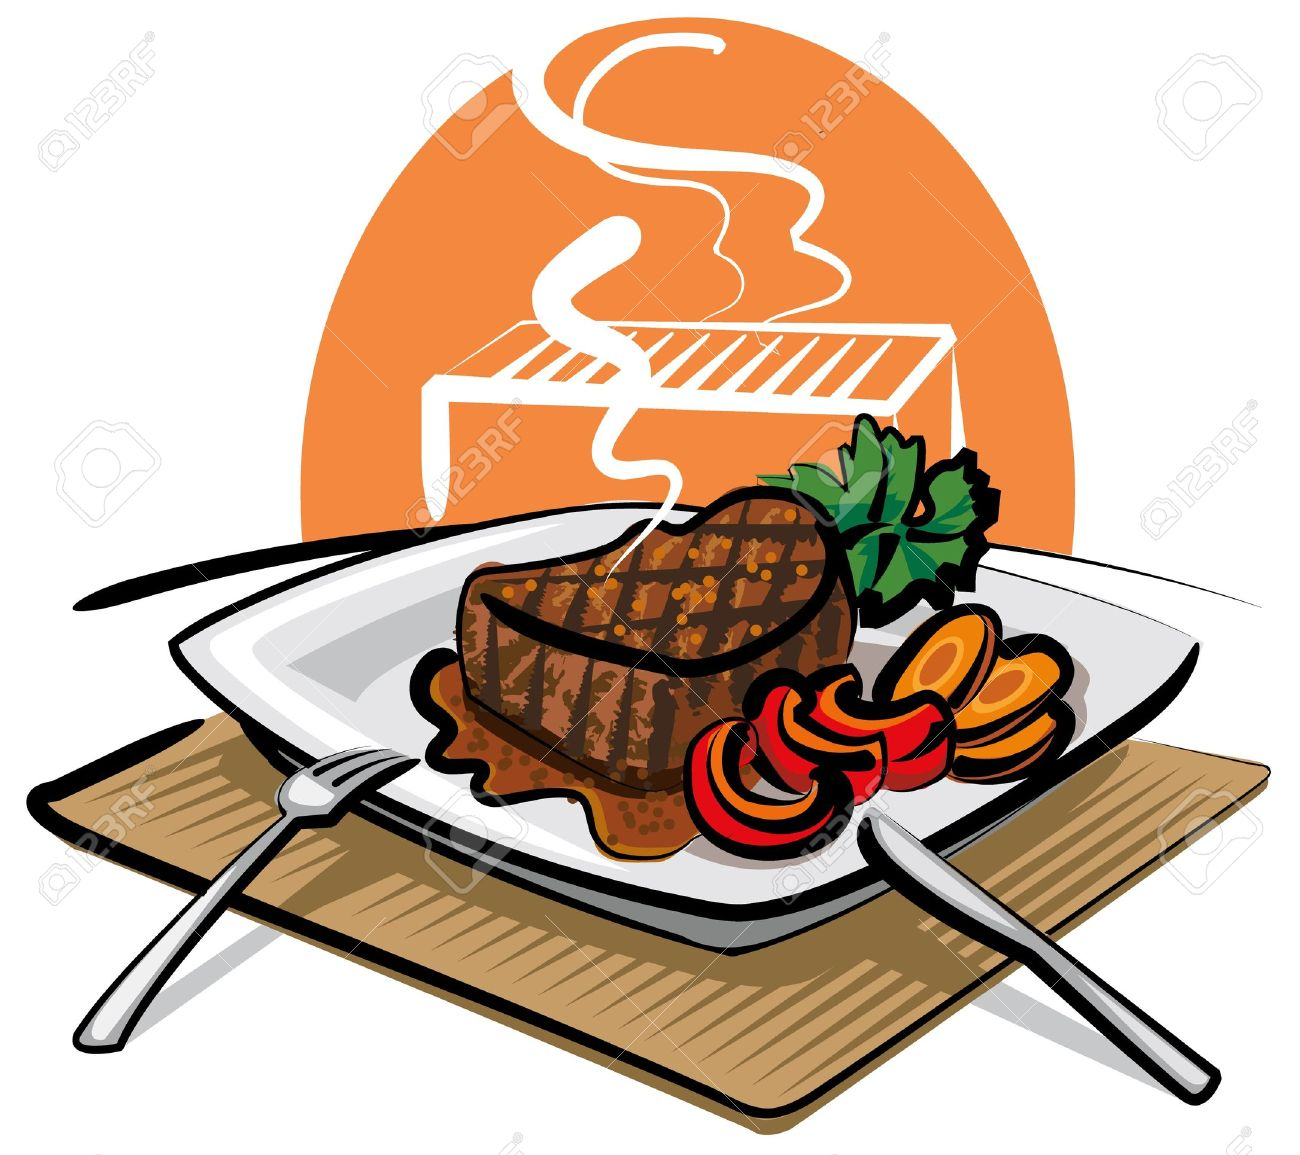 Steak Clipart Izs017445 Jpg